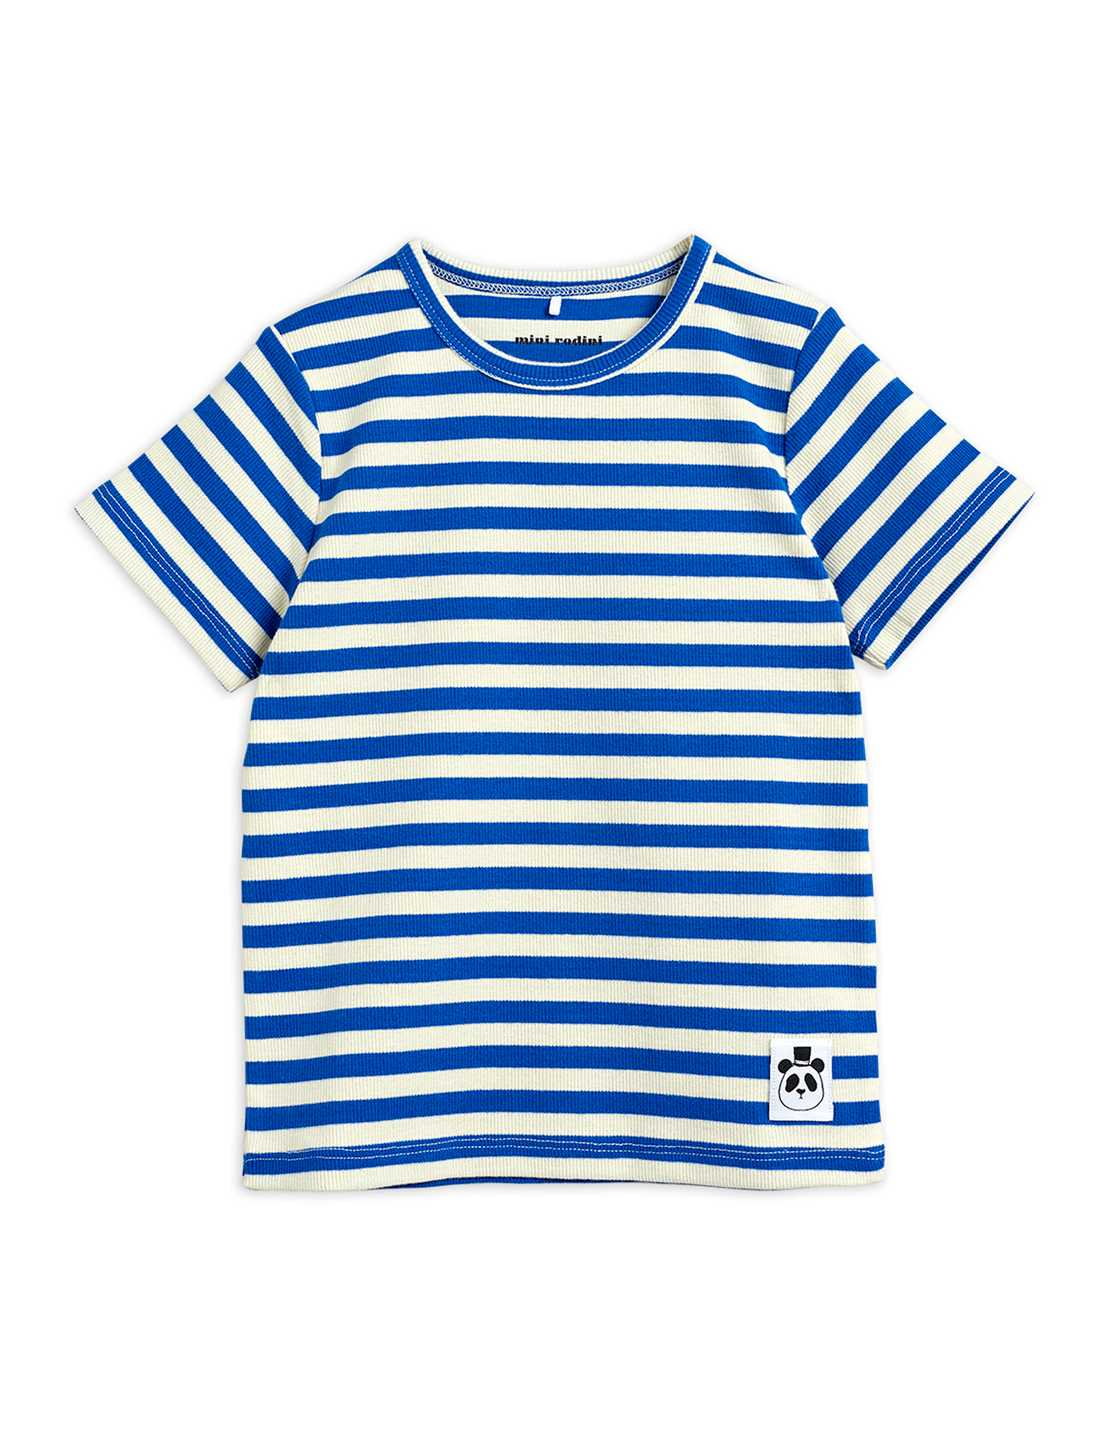 MINI RODINI STRIPE RIB SS TEE BLUE